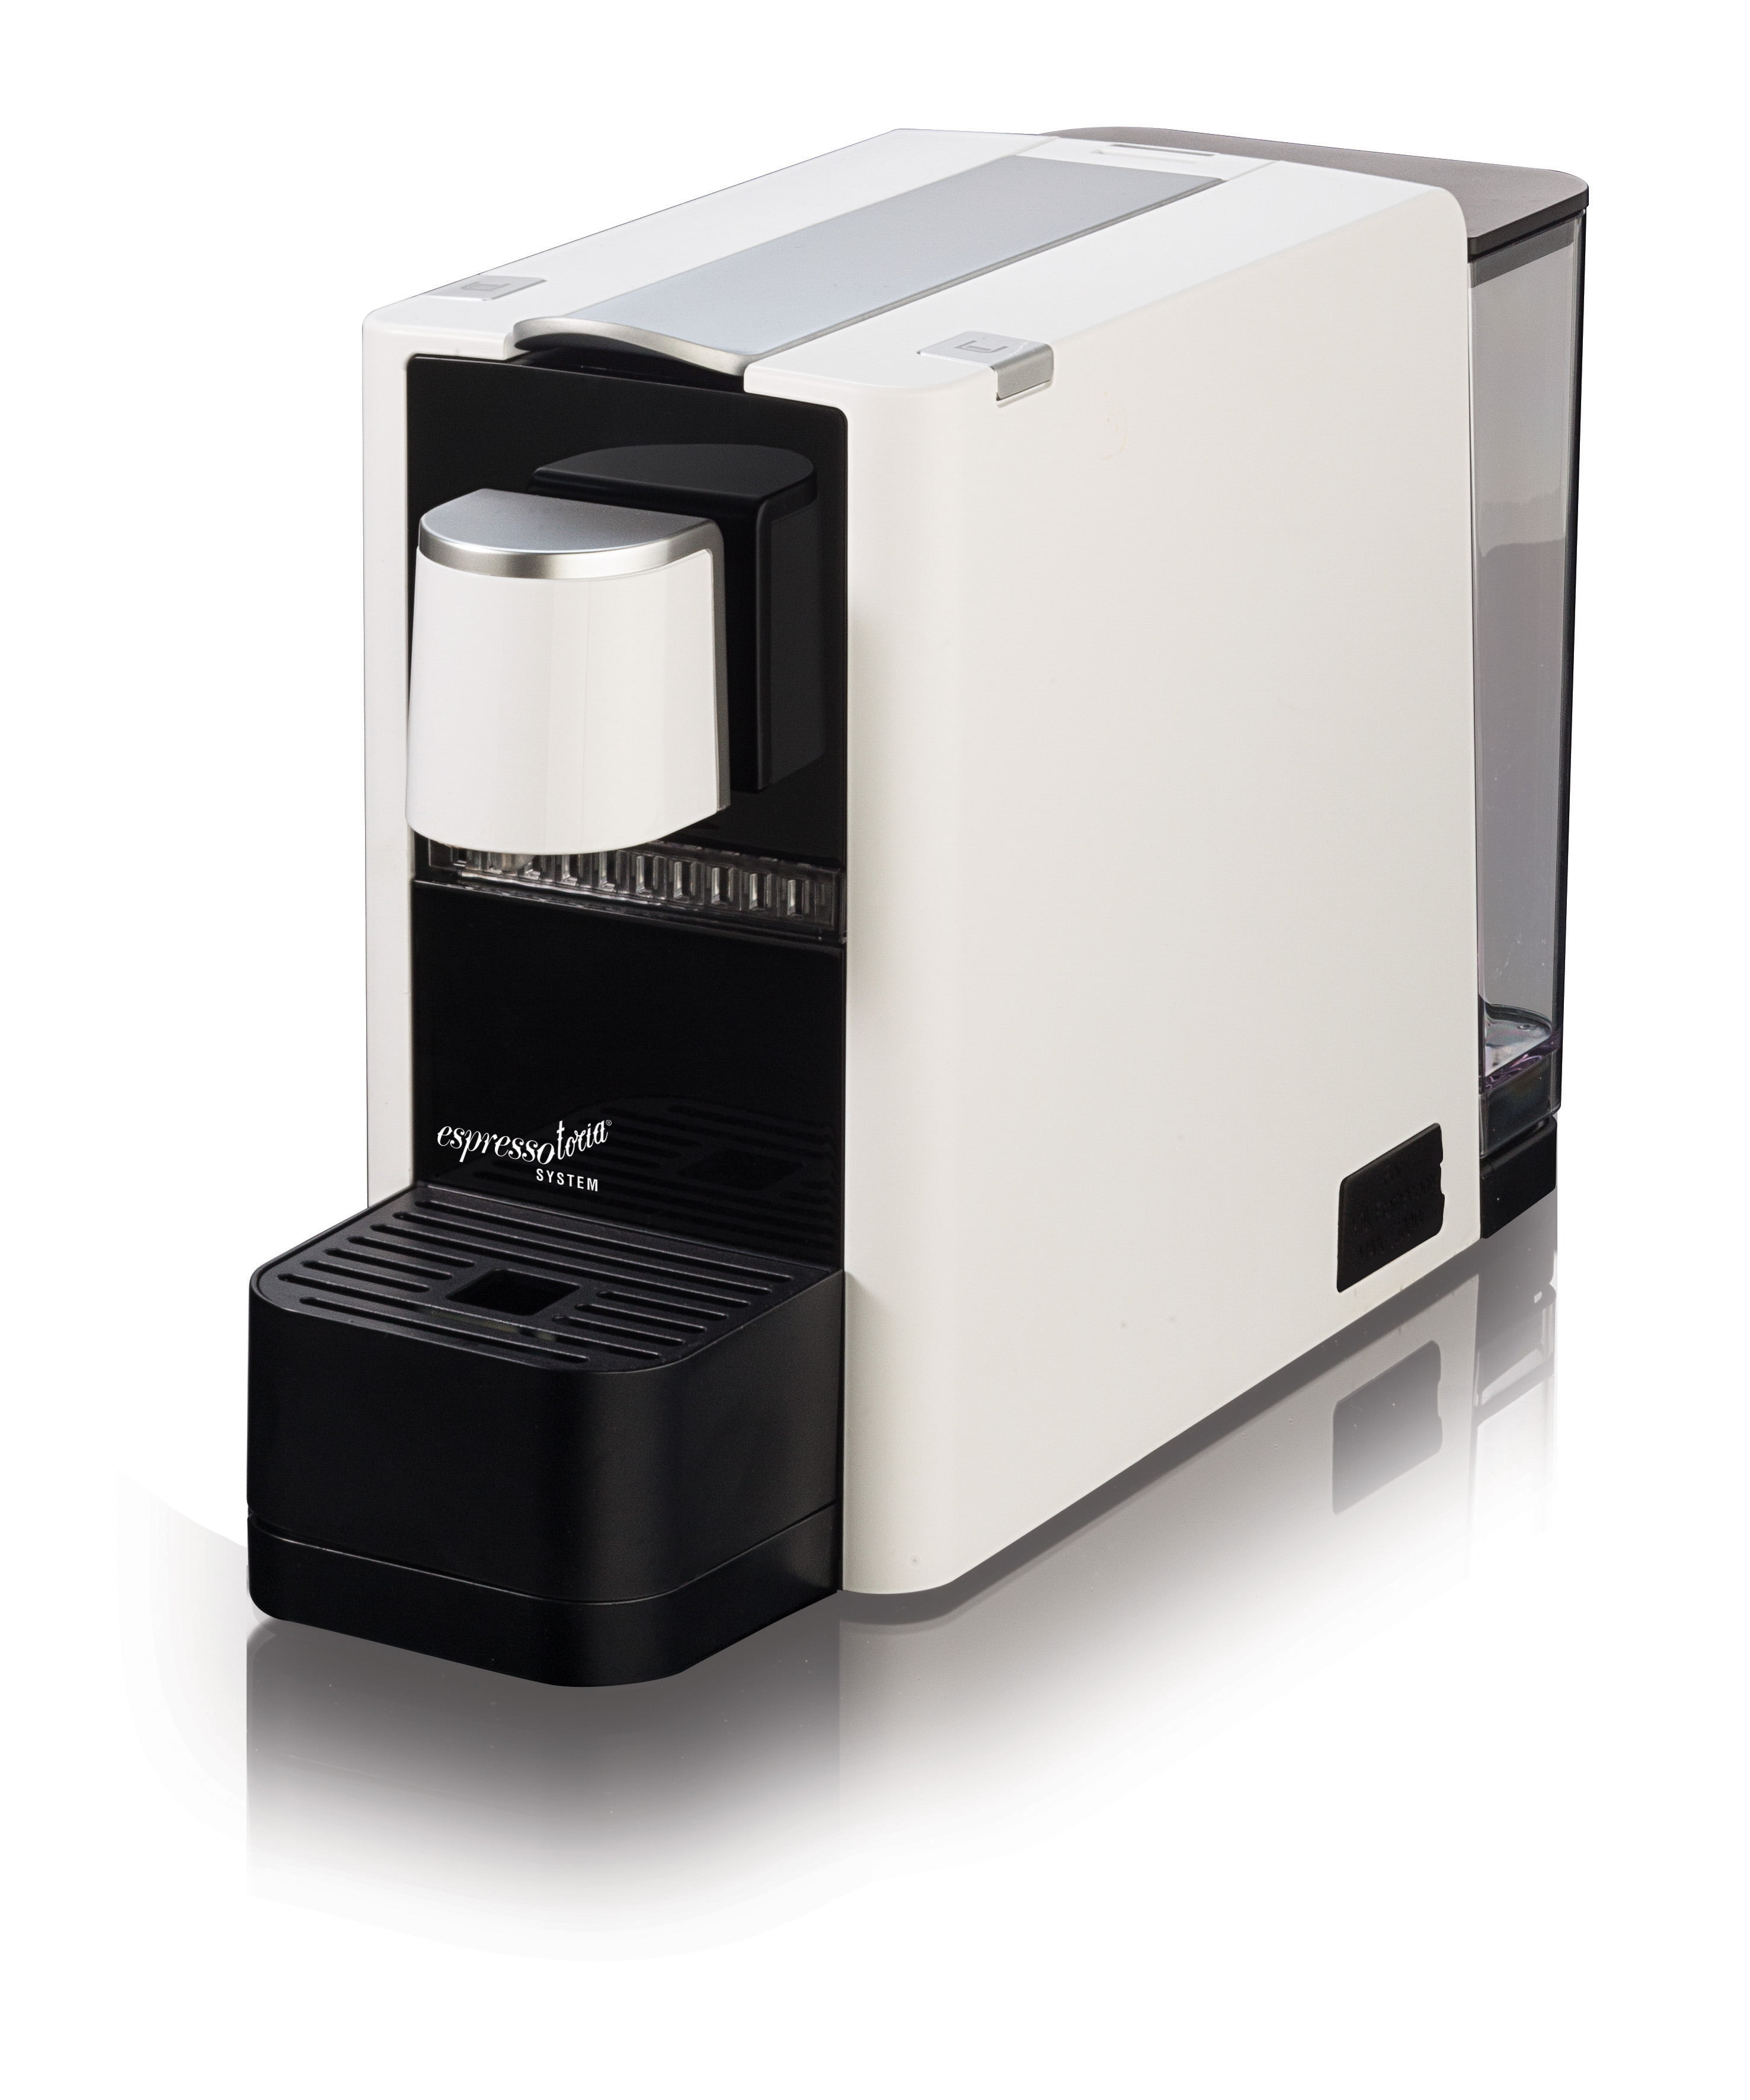 Espressotoria Caprista Espresso Coffee Pod Machine White Walmartcom